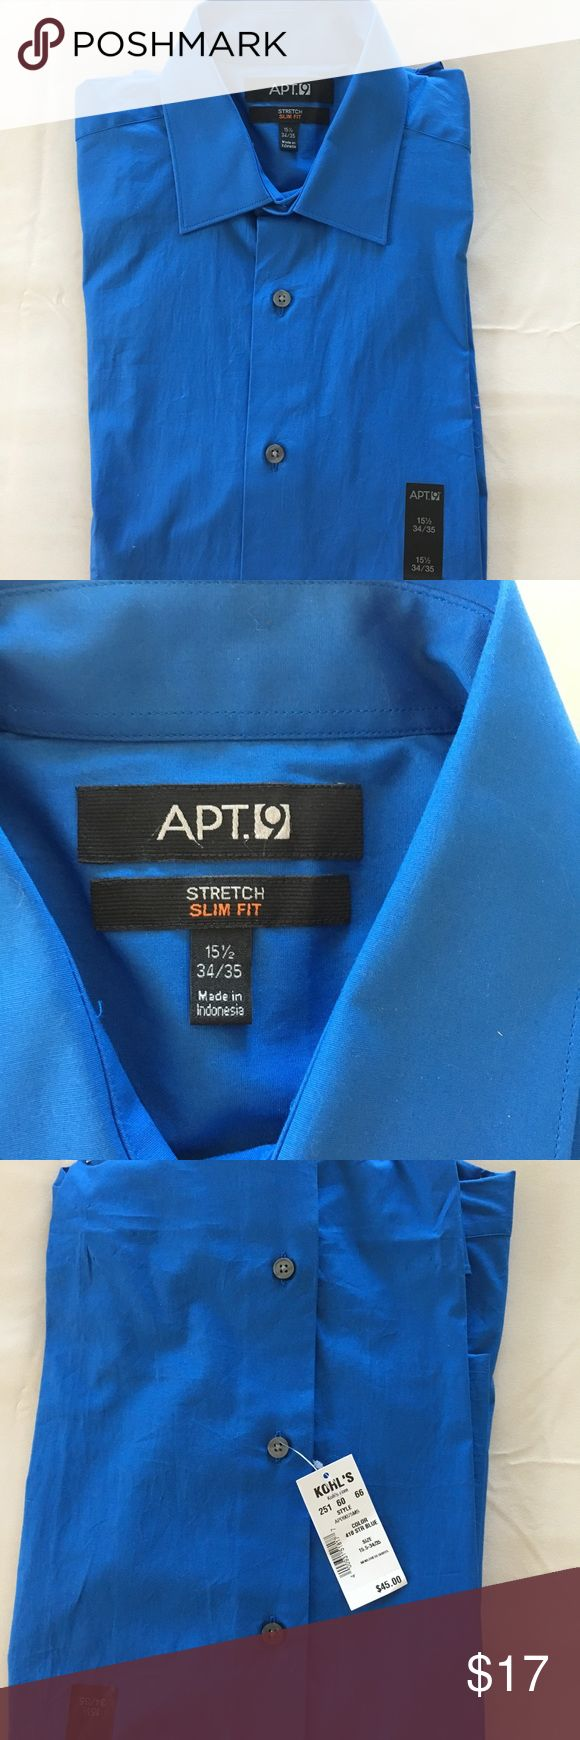 Men's Apt 9 NWT Stretch Slim Fit Dress Shirt Gorgeous royal blue color. Stretch slim fit. Collar 15 1/2, 34/35 arms. Apt. 9 Shirts Dress Shirts